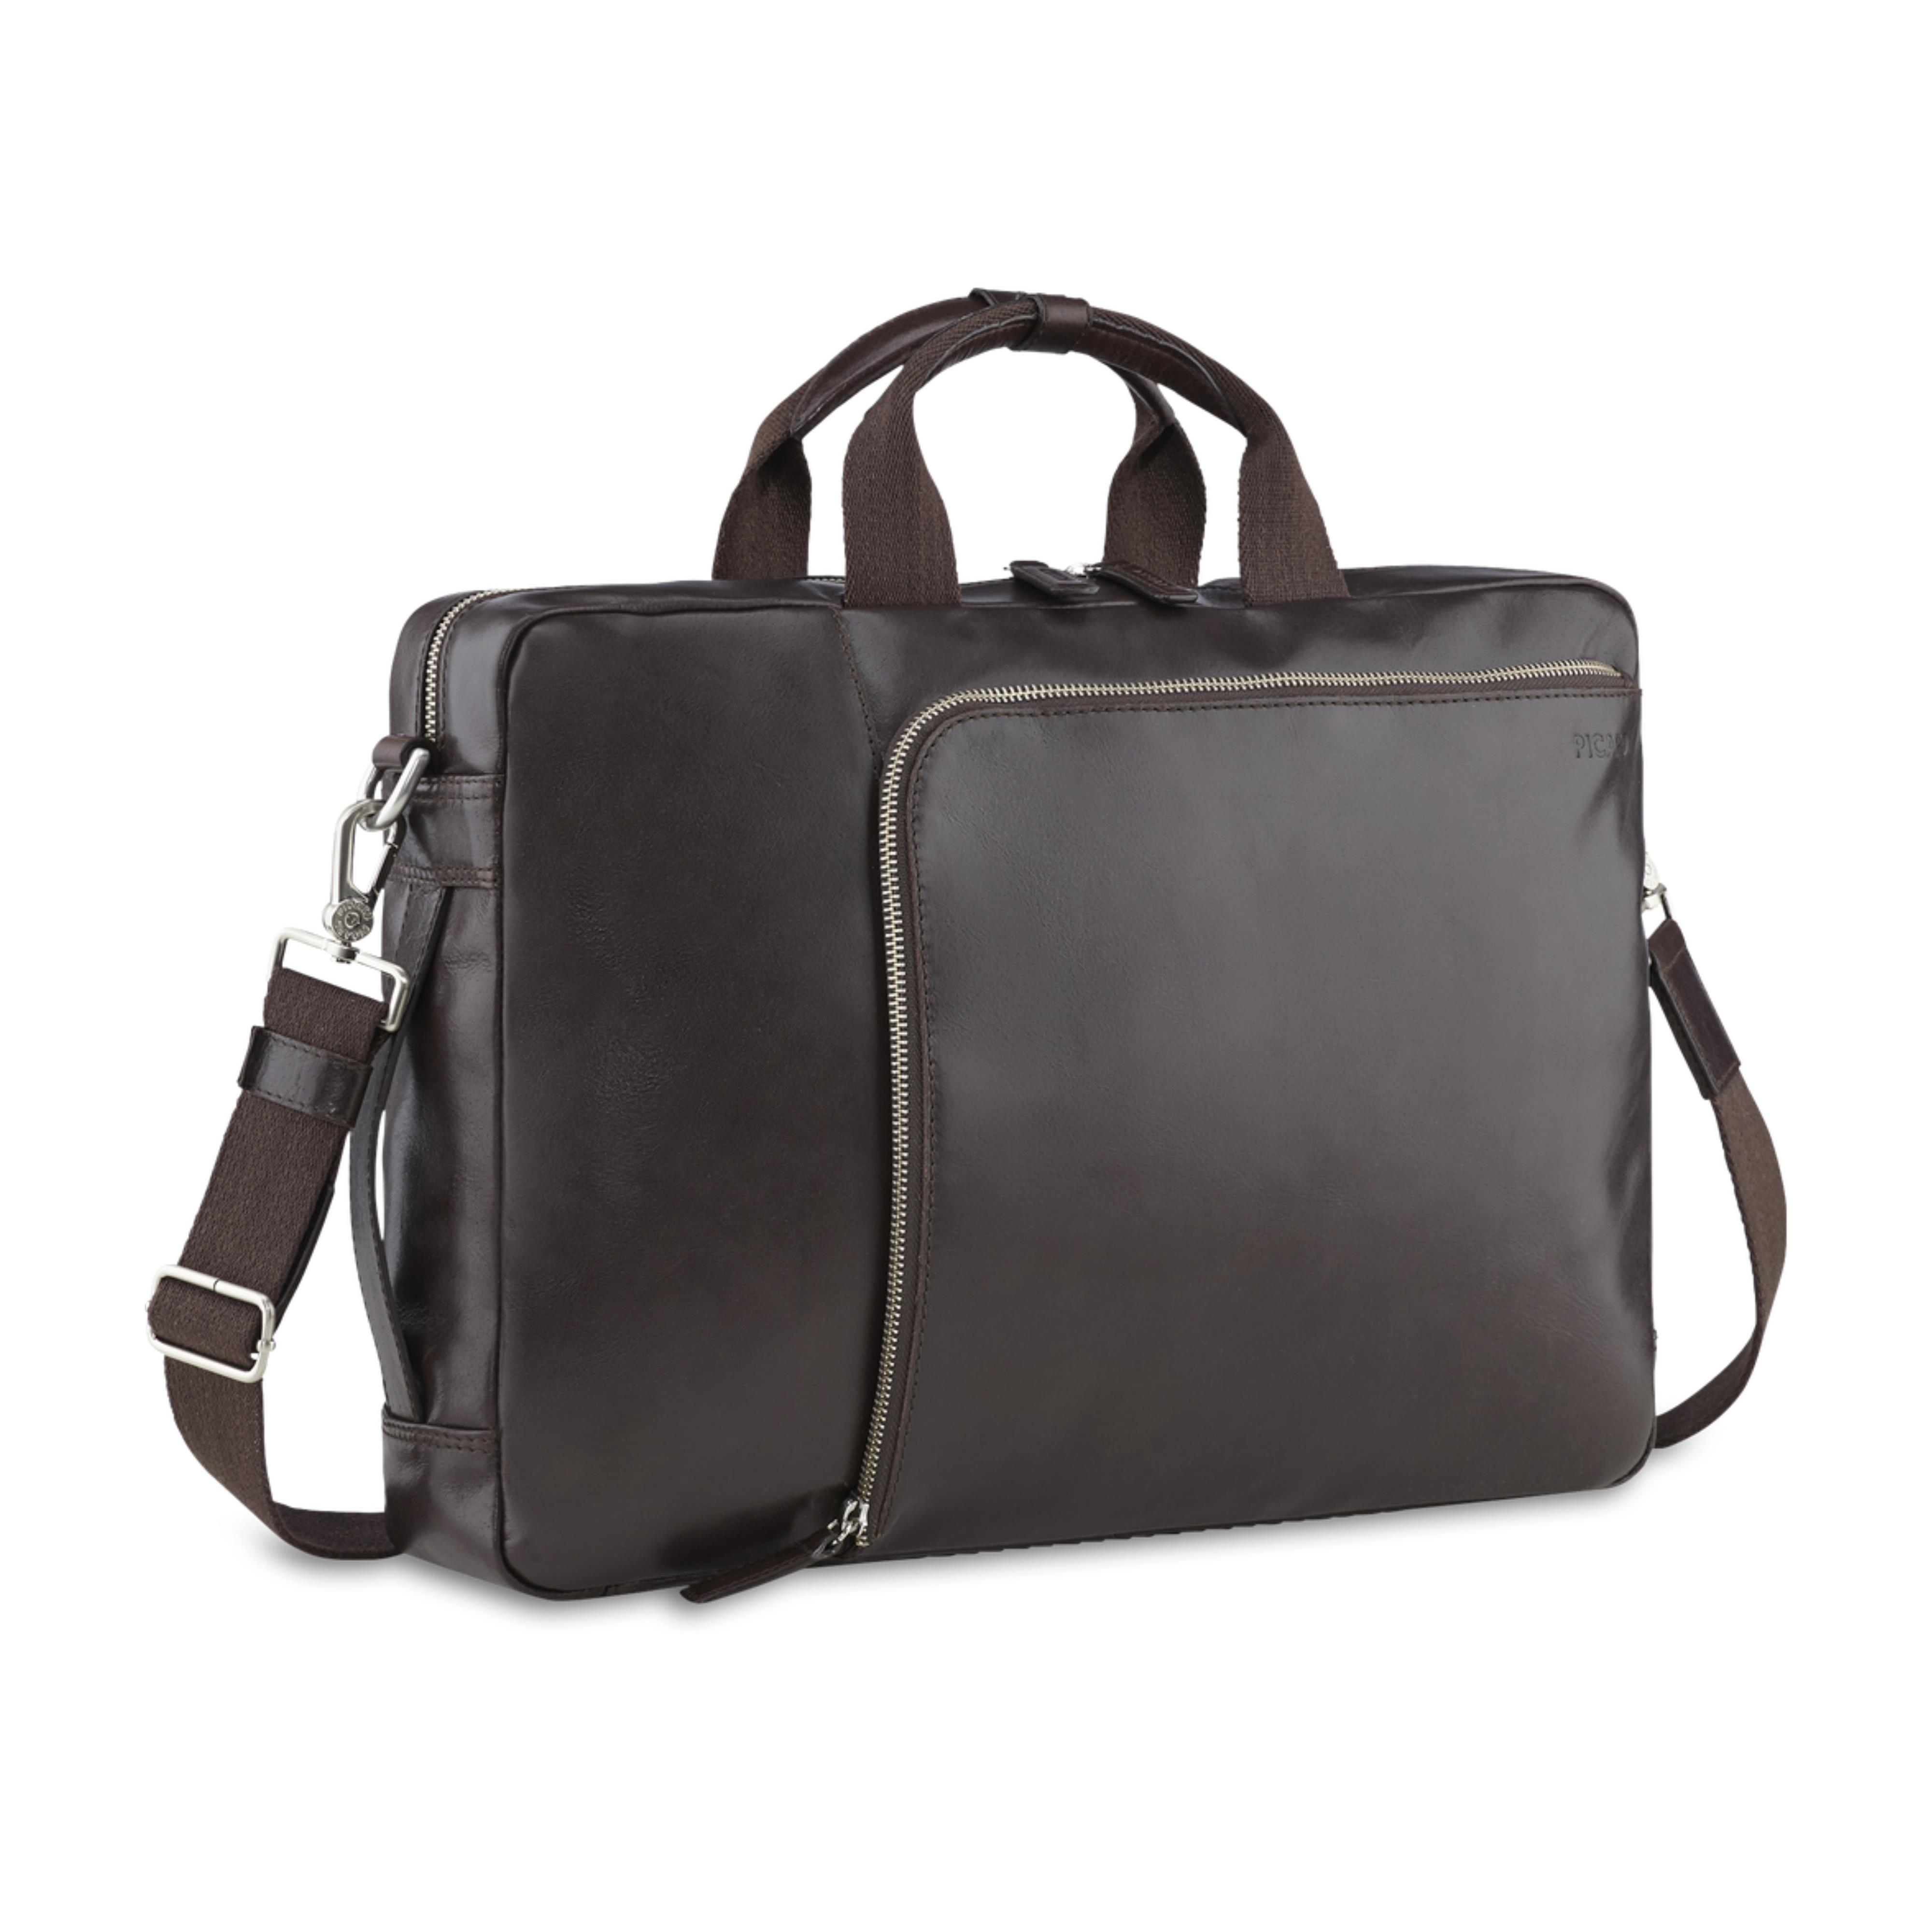 734d1a3996f14 ... 002 · PICARD Herren Leder Multifunktions-Businesstasche Aktentasche  Tasche Buddy Cafe 4505 003 ...